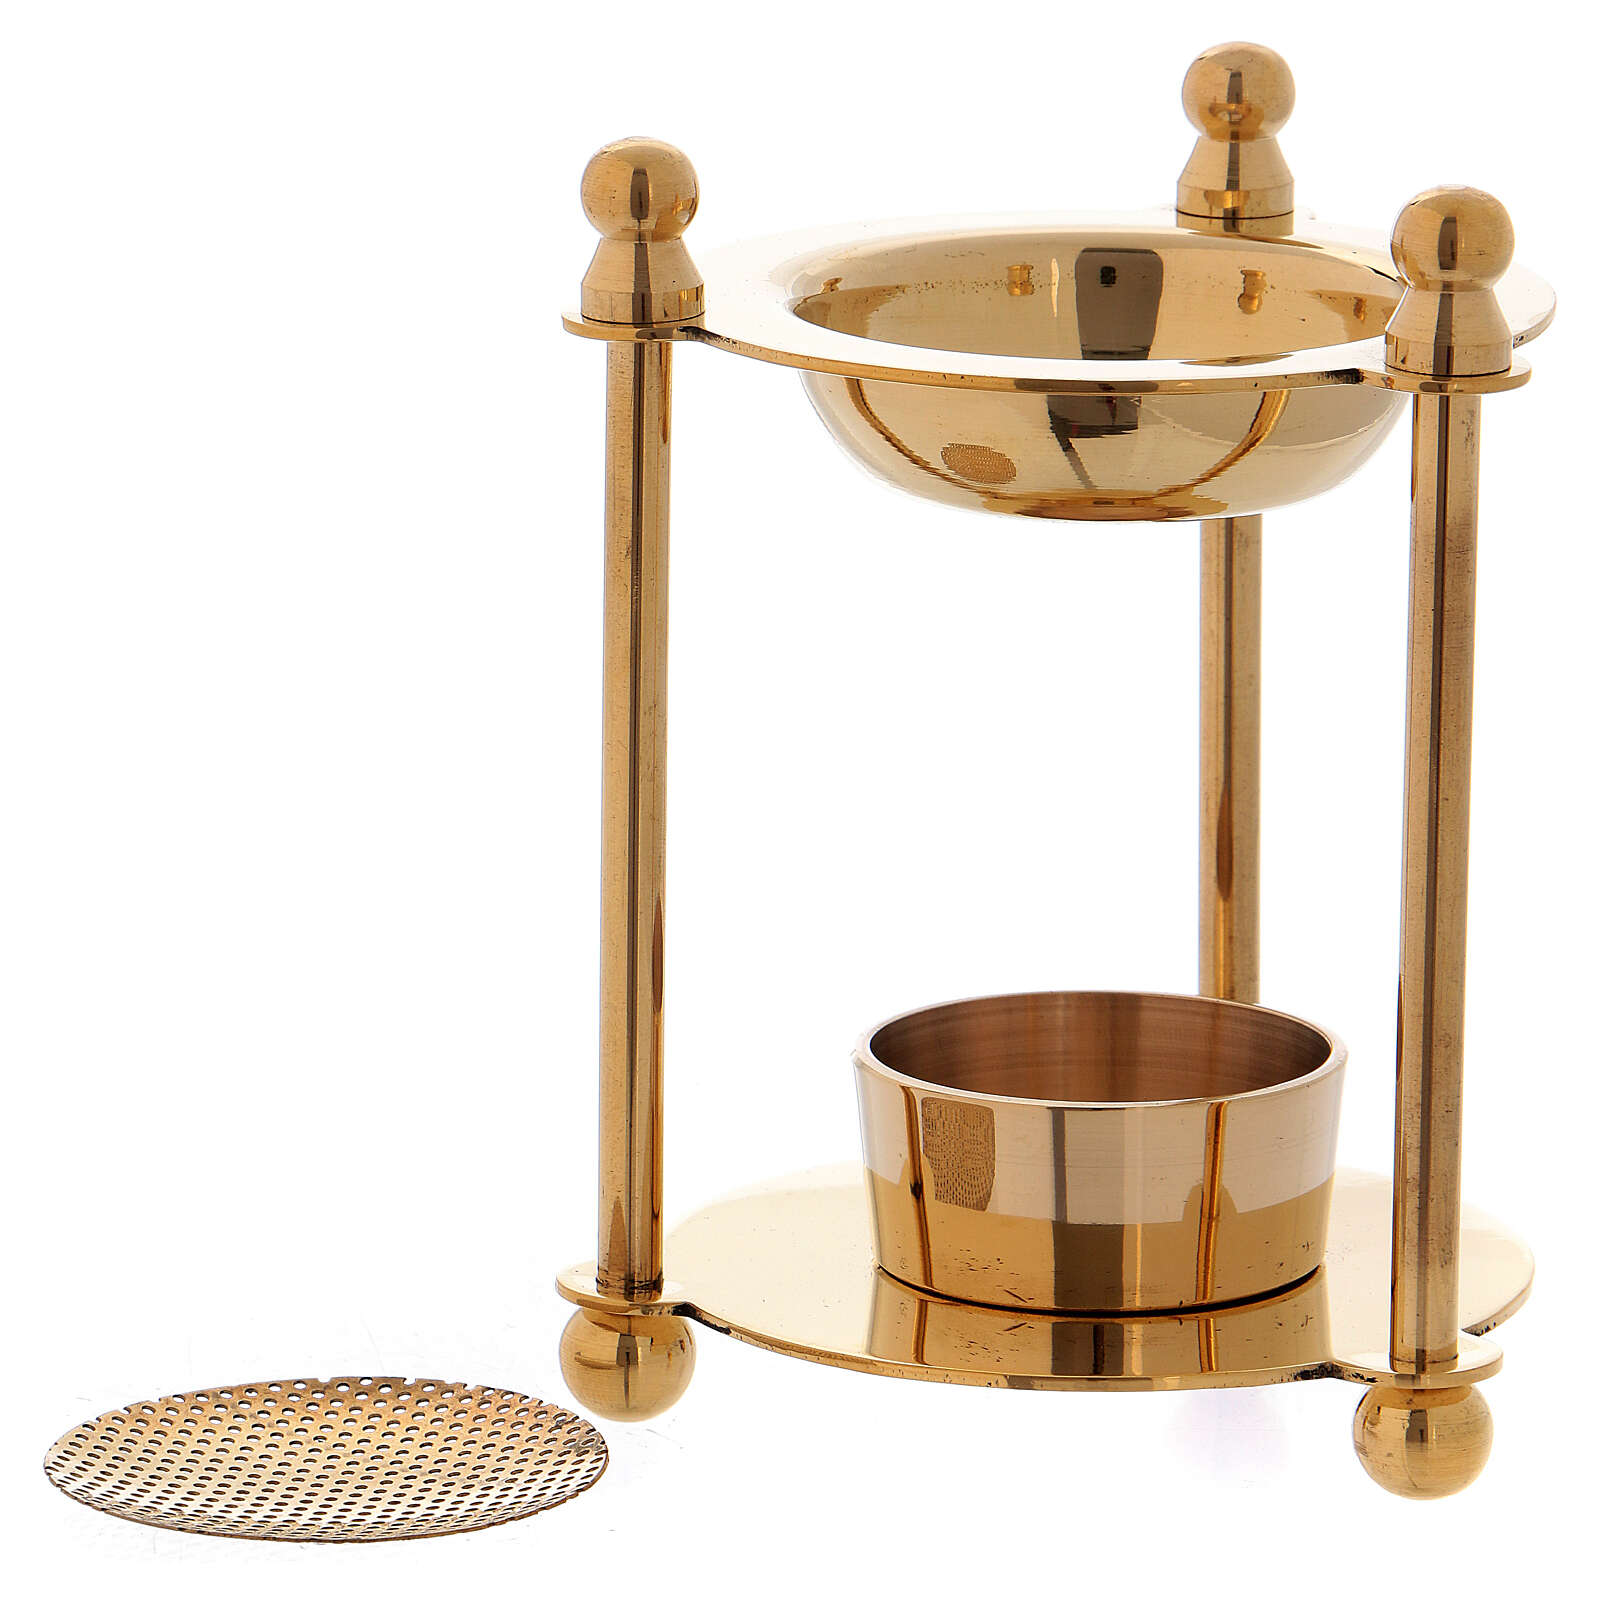 Incense burner in gold plated polish brass removable net 3